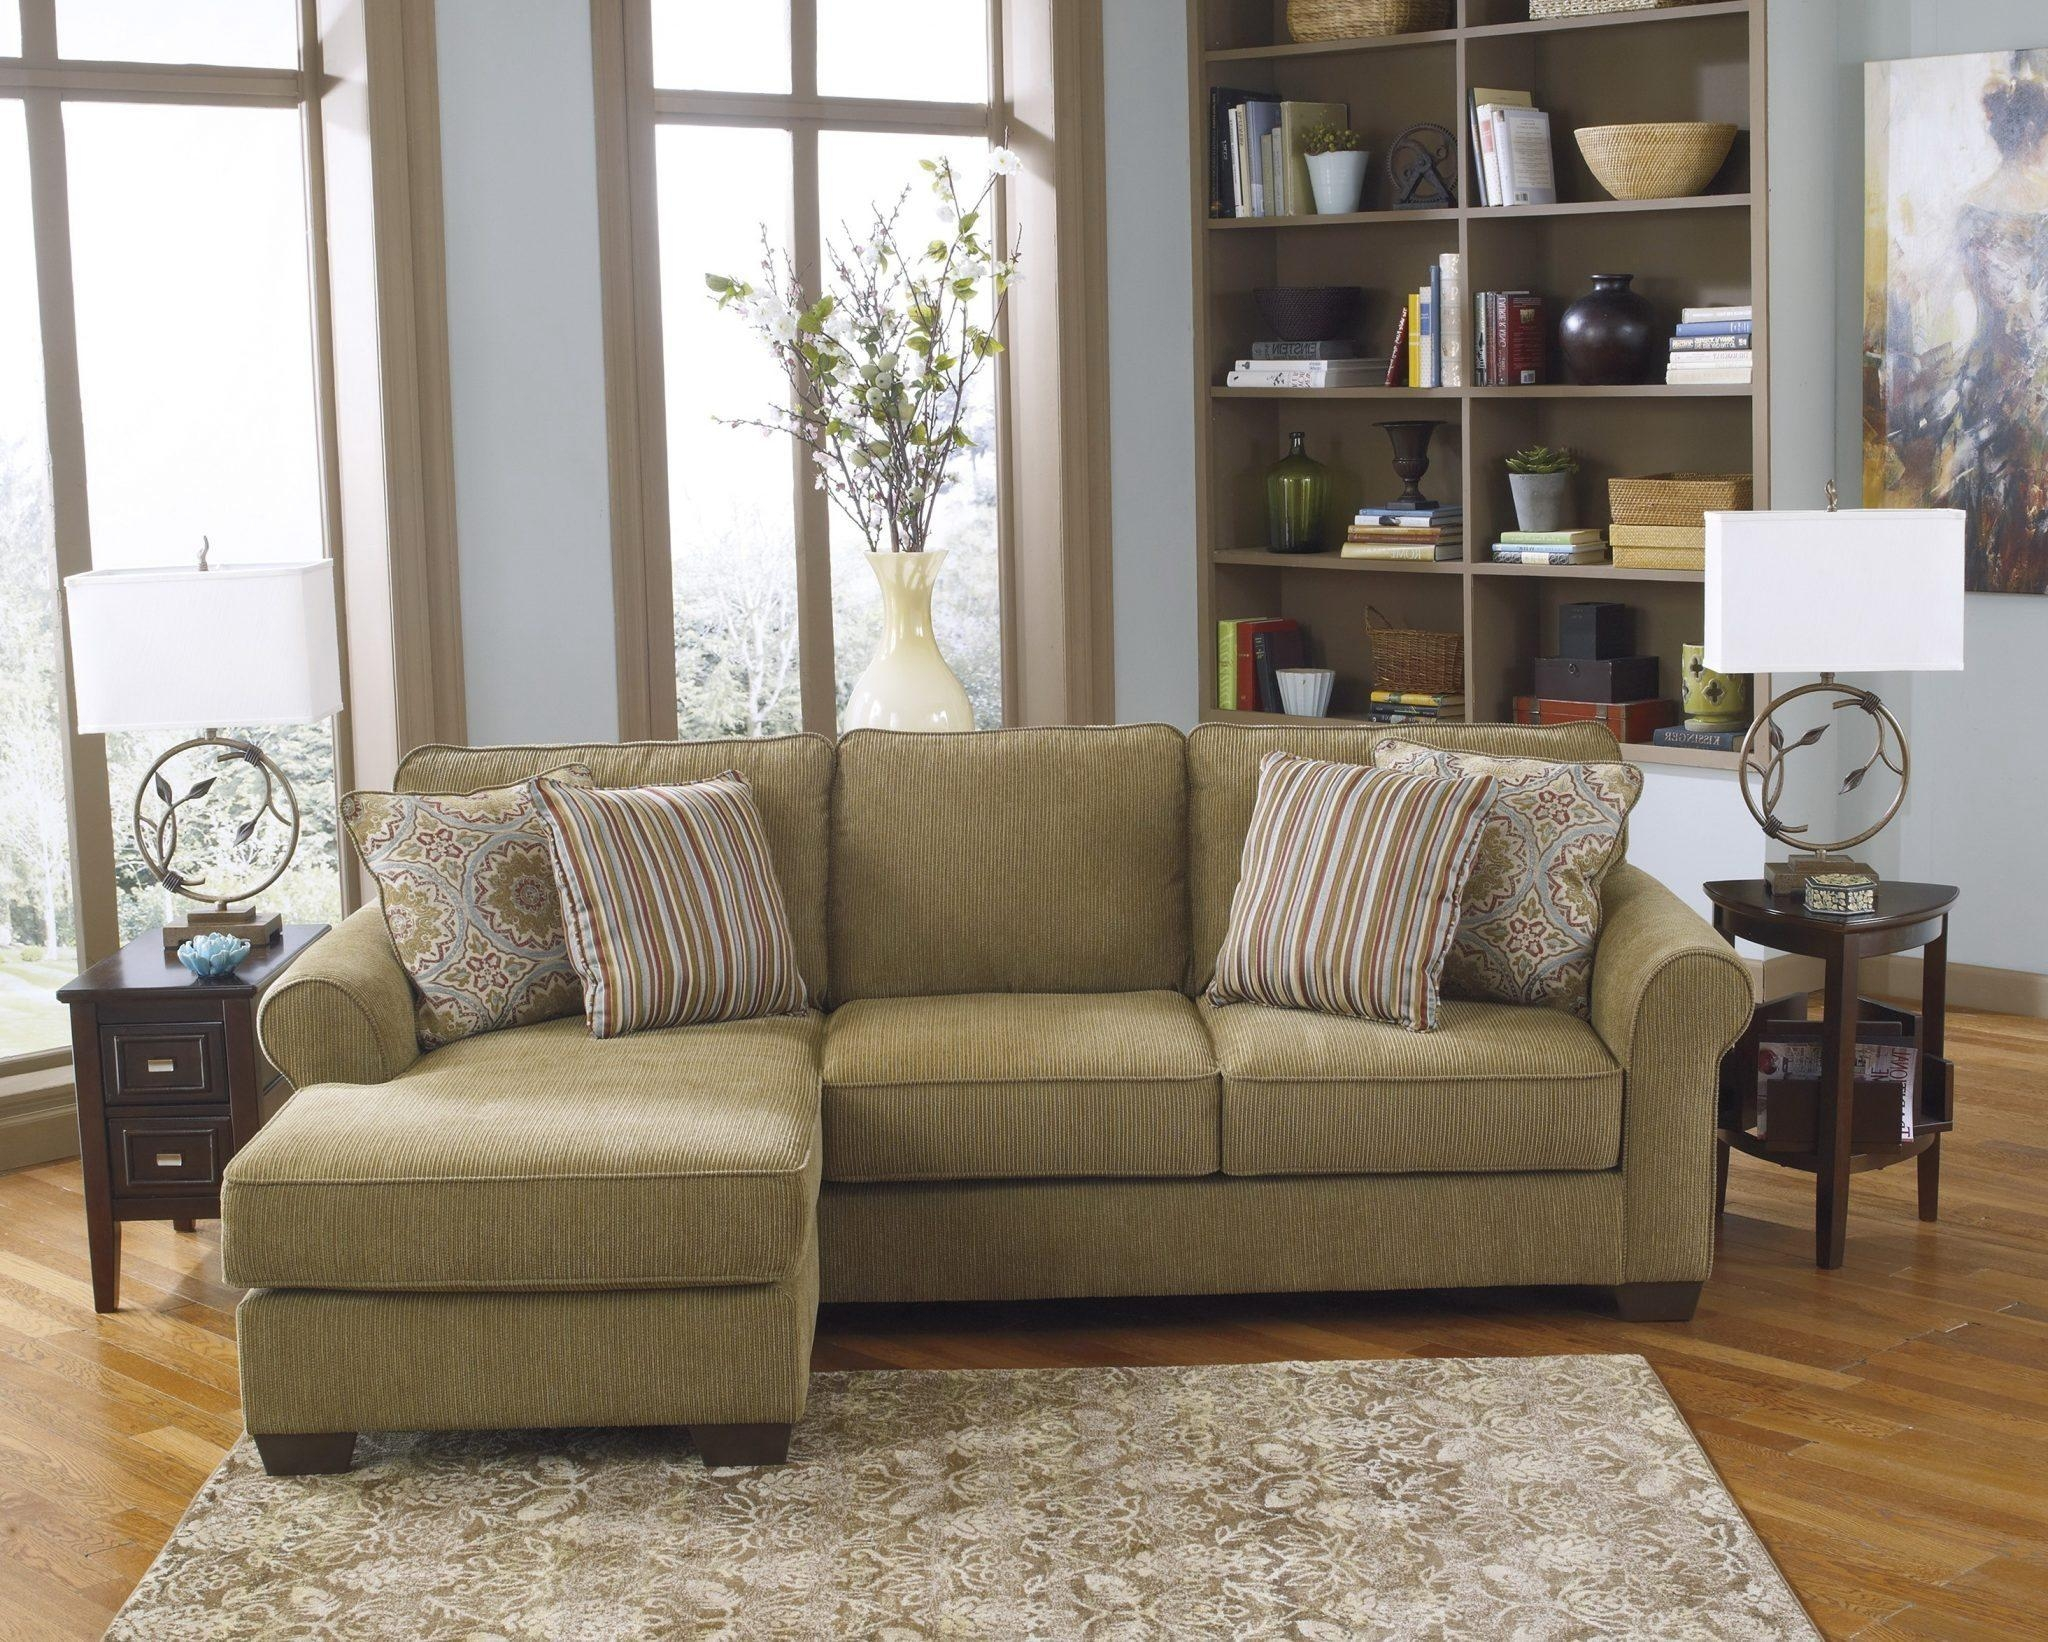 Berkline Sectional Sofa | Sofa Gallery | Kengire Regarding Berkline Sectional Sofas (Image 6 of 20)